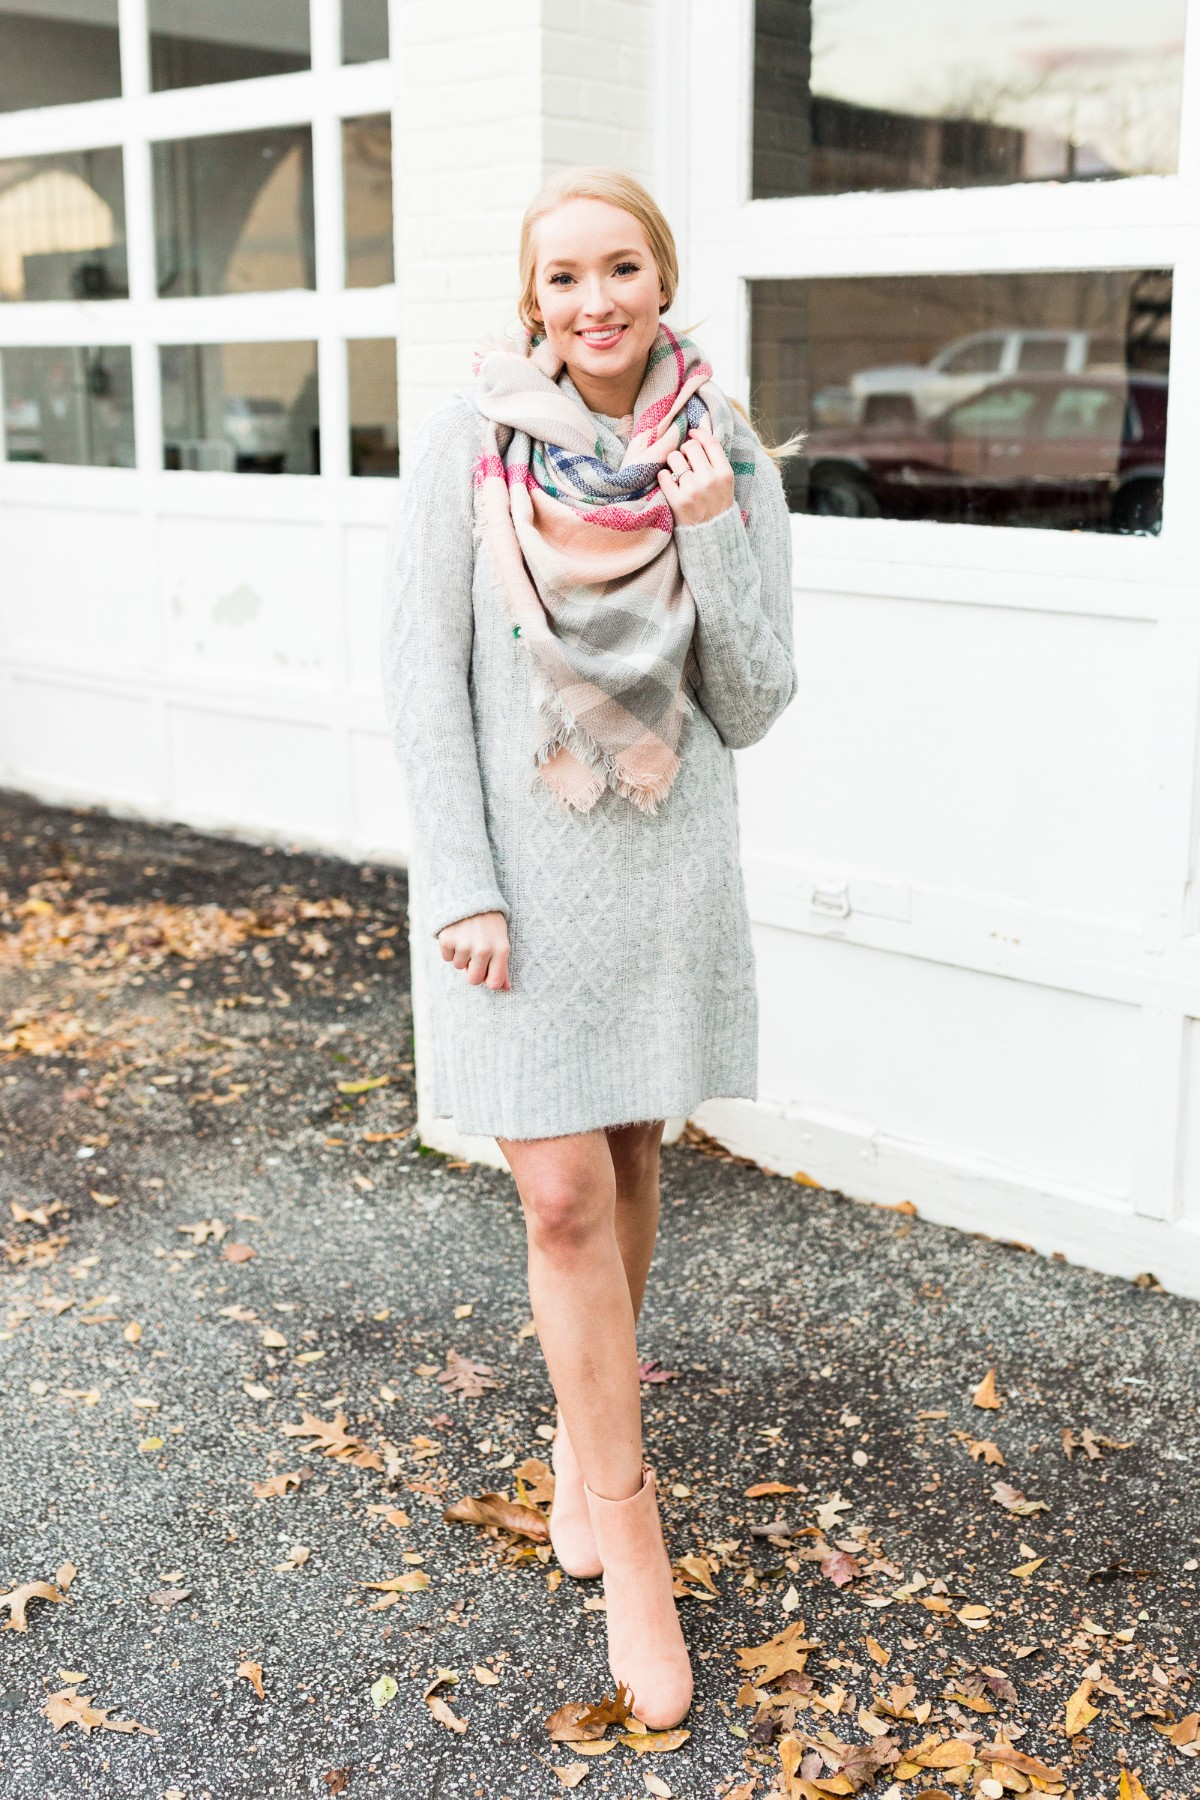 walmart dress, sweater dress, maurices, strawberry chic